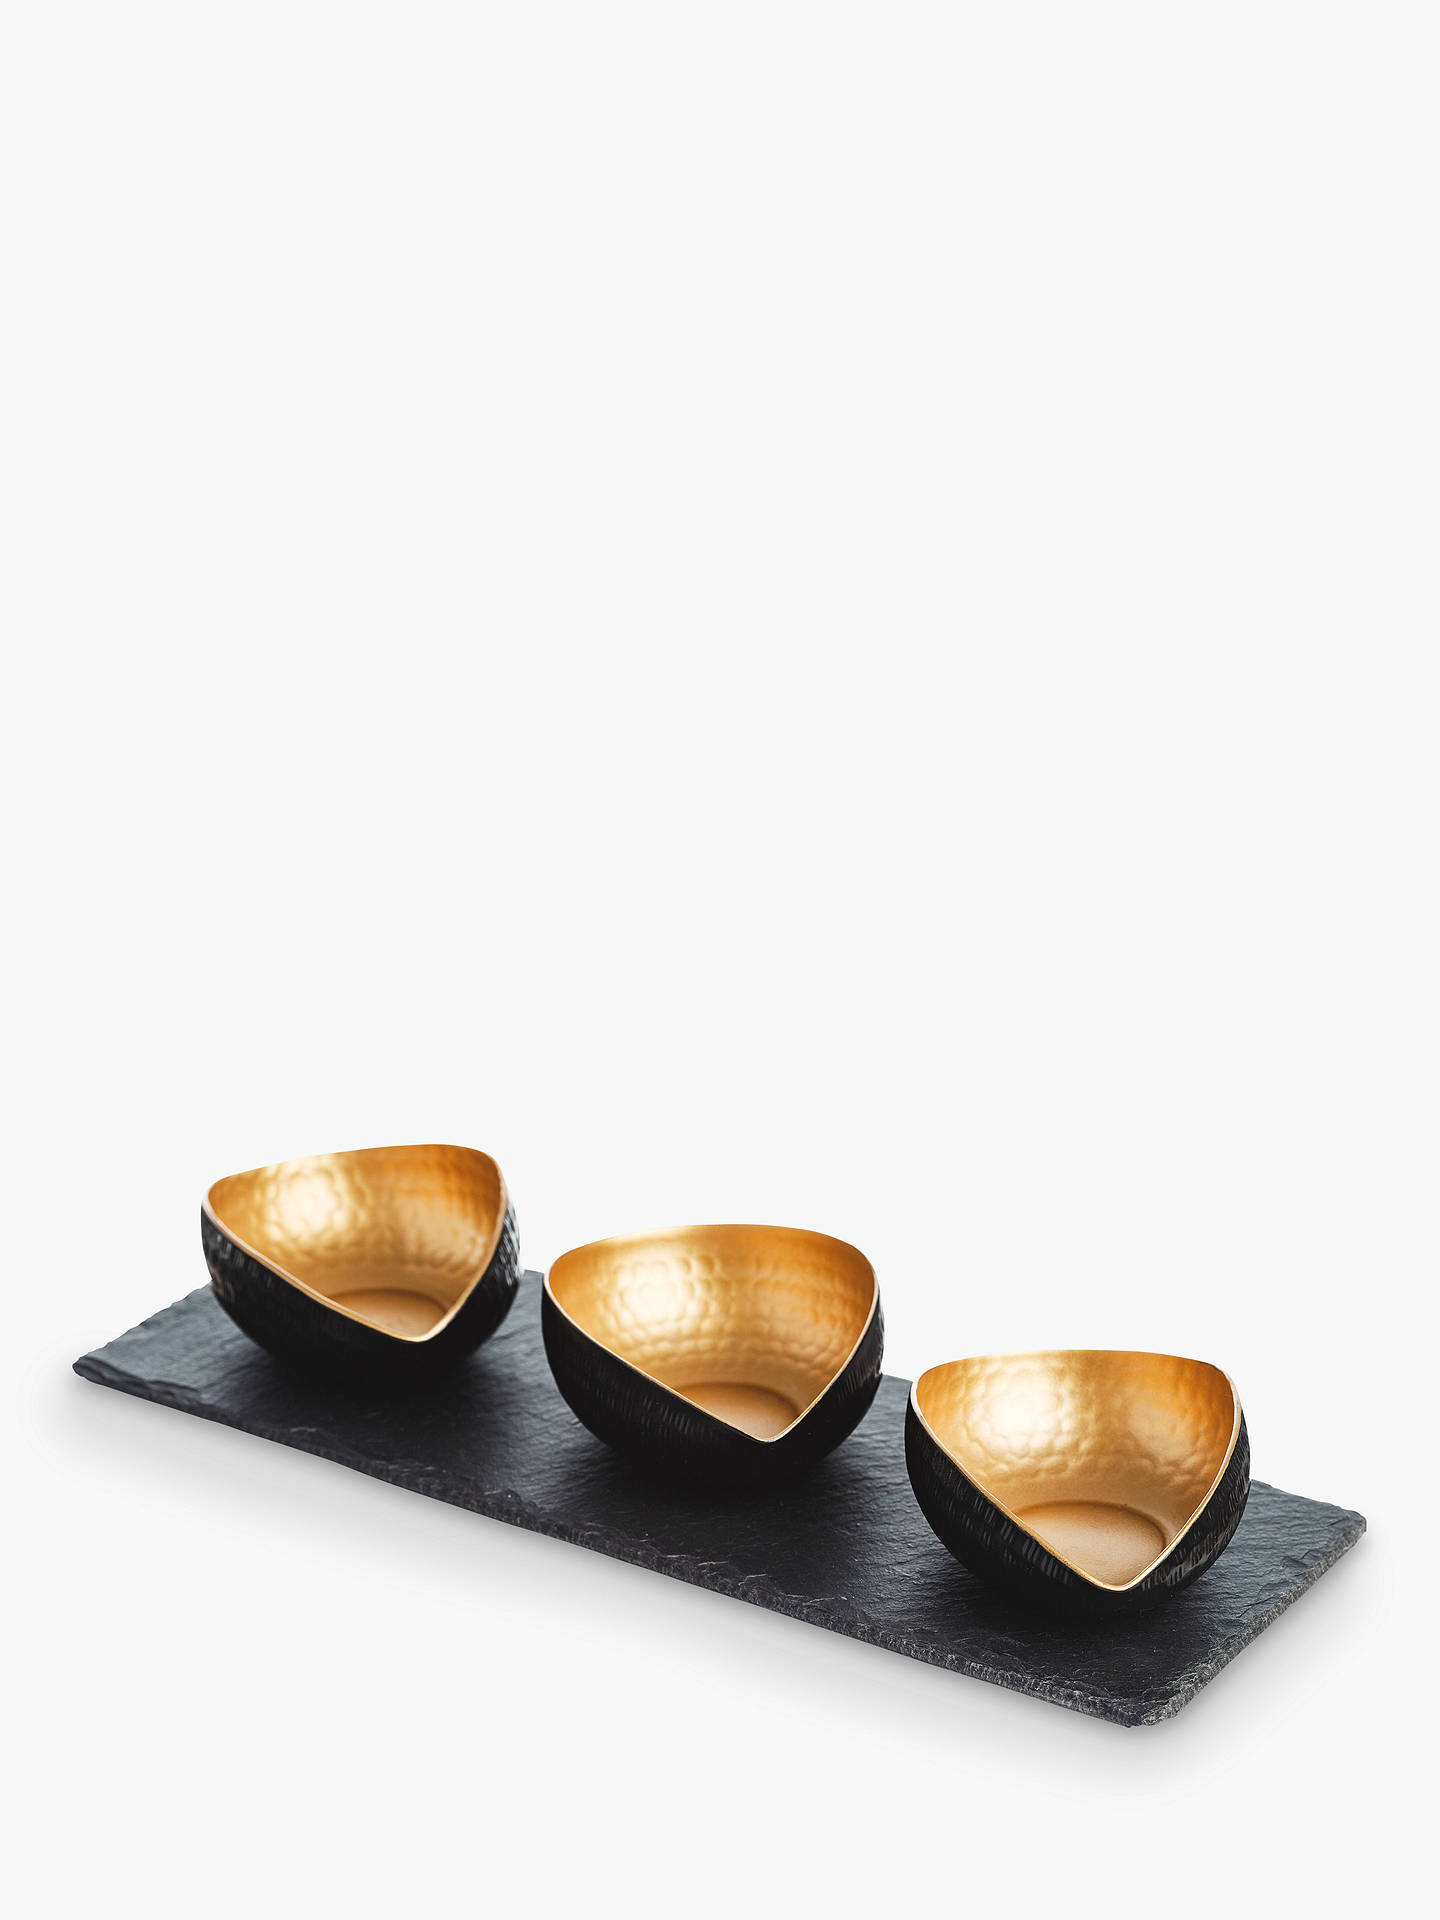 Buy The Just Slate Company Deluxe Mezze Set, Black/Gold Online at johnlewis.com